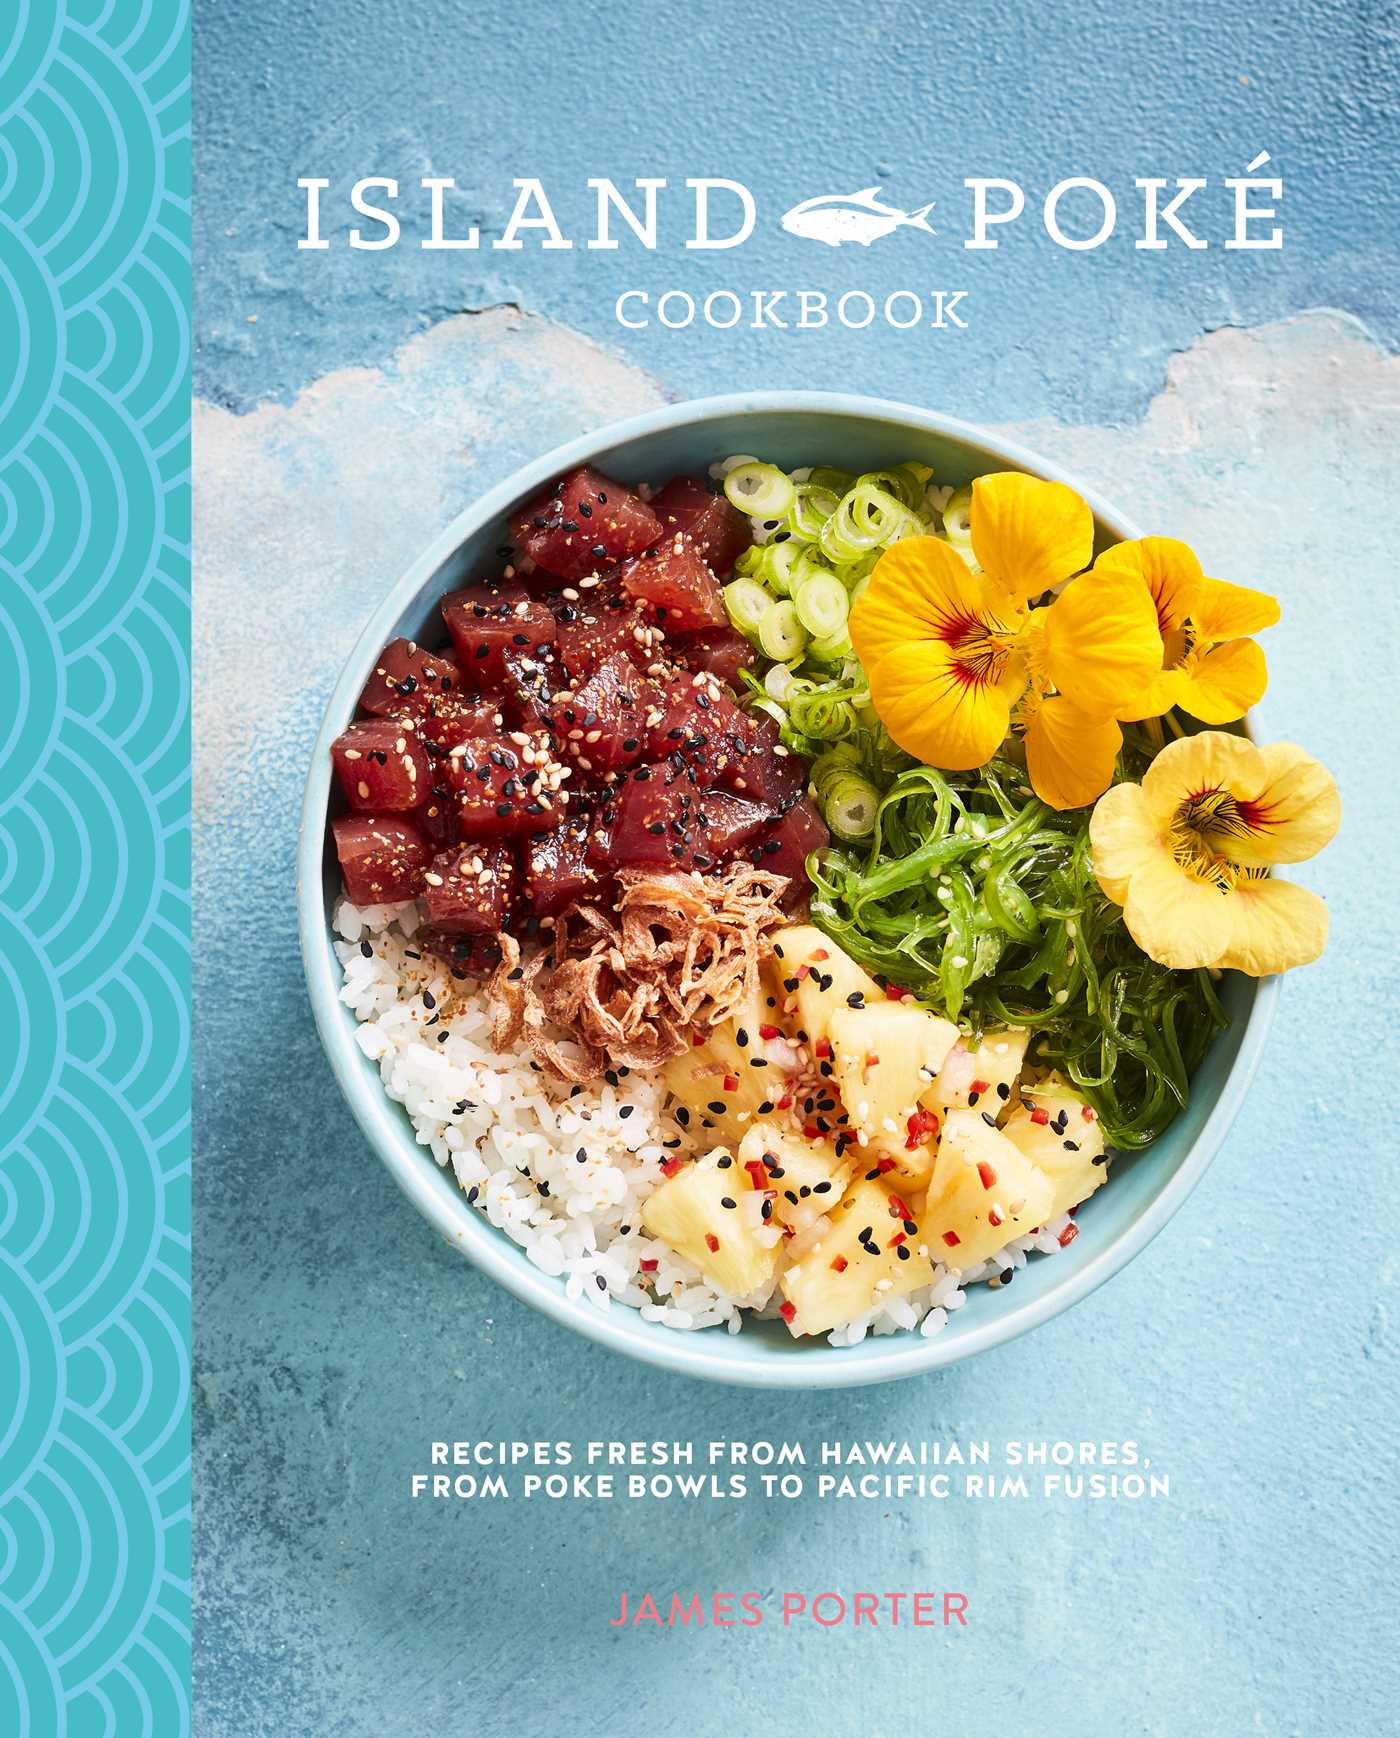 The island poke cookbook 9781849759687 hr